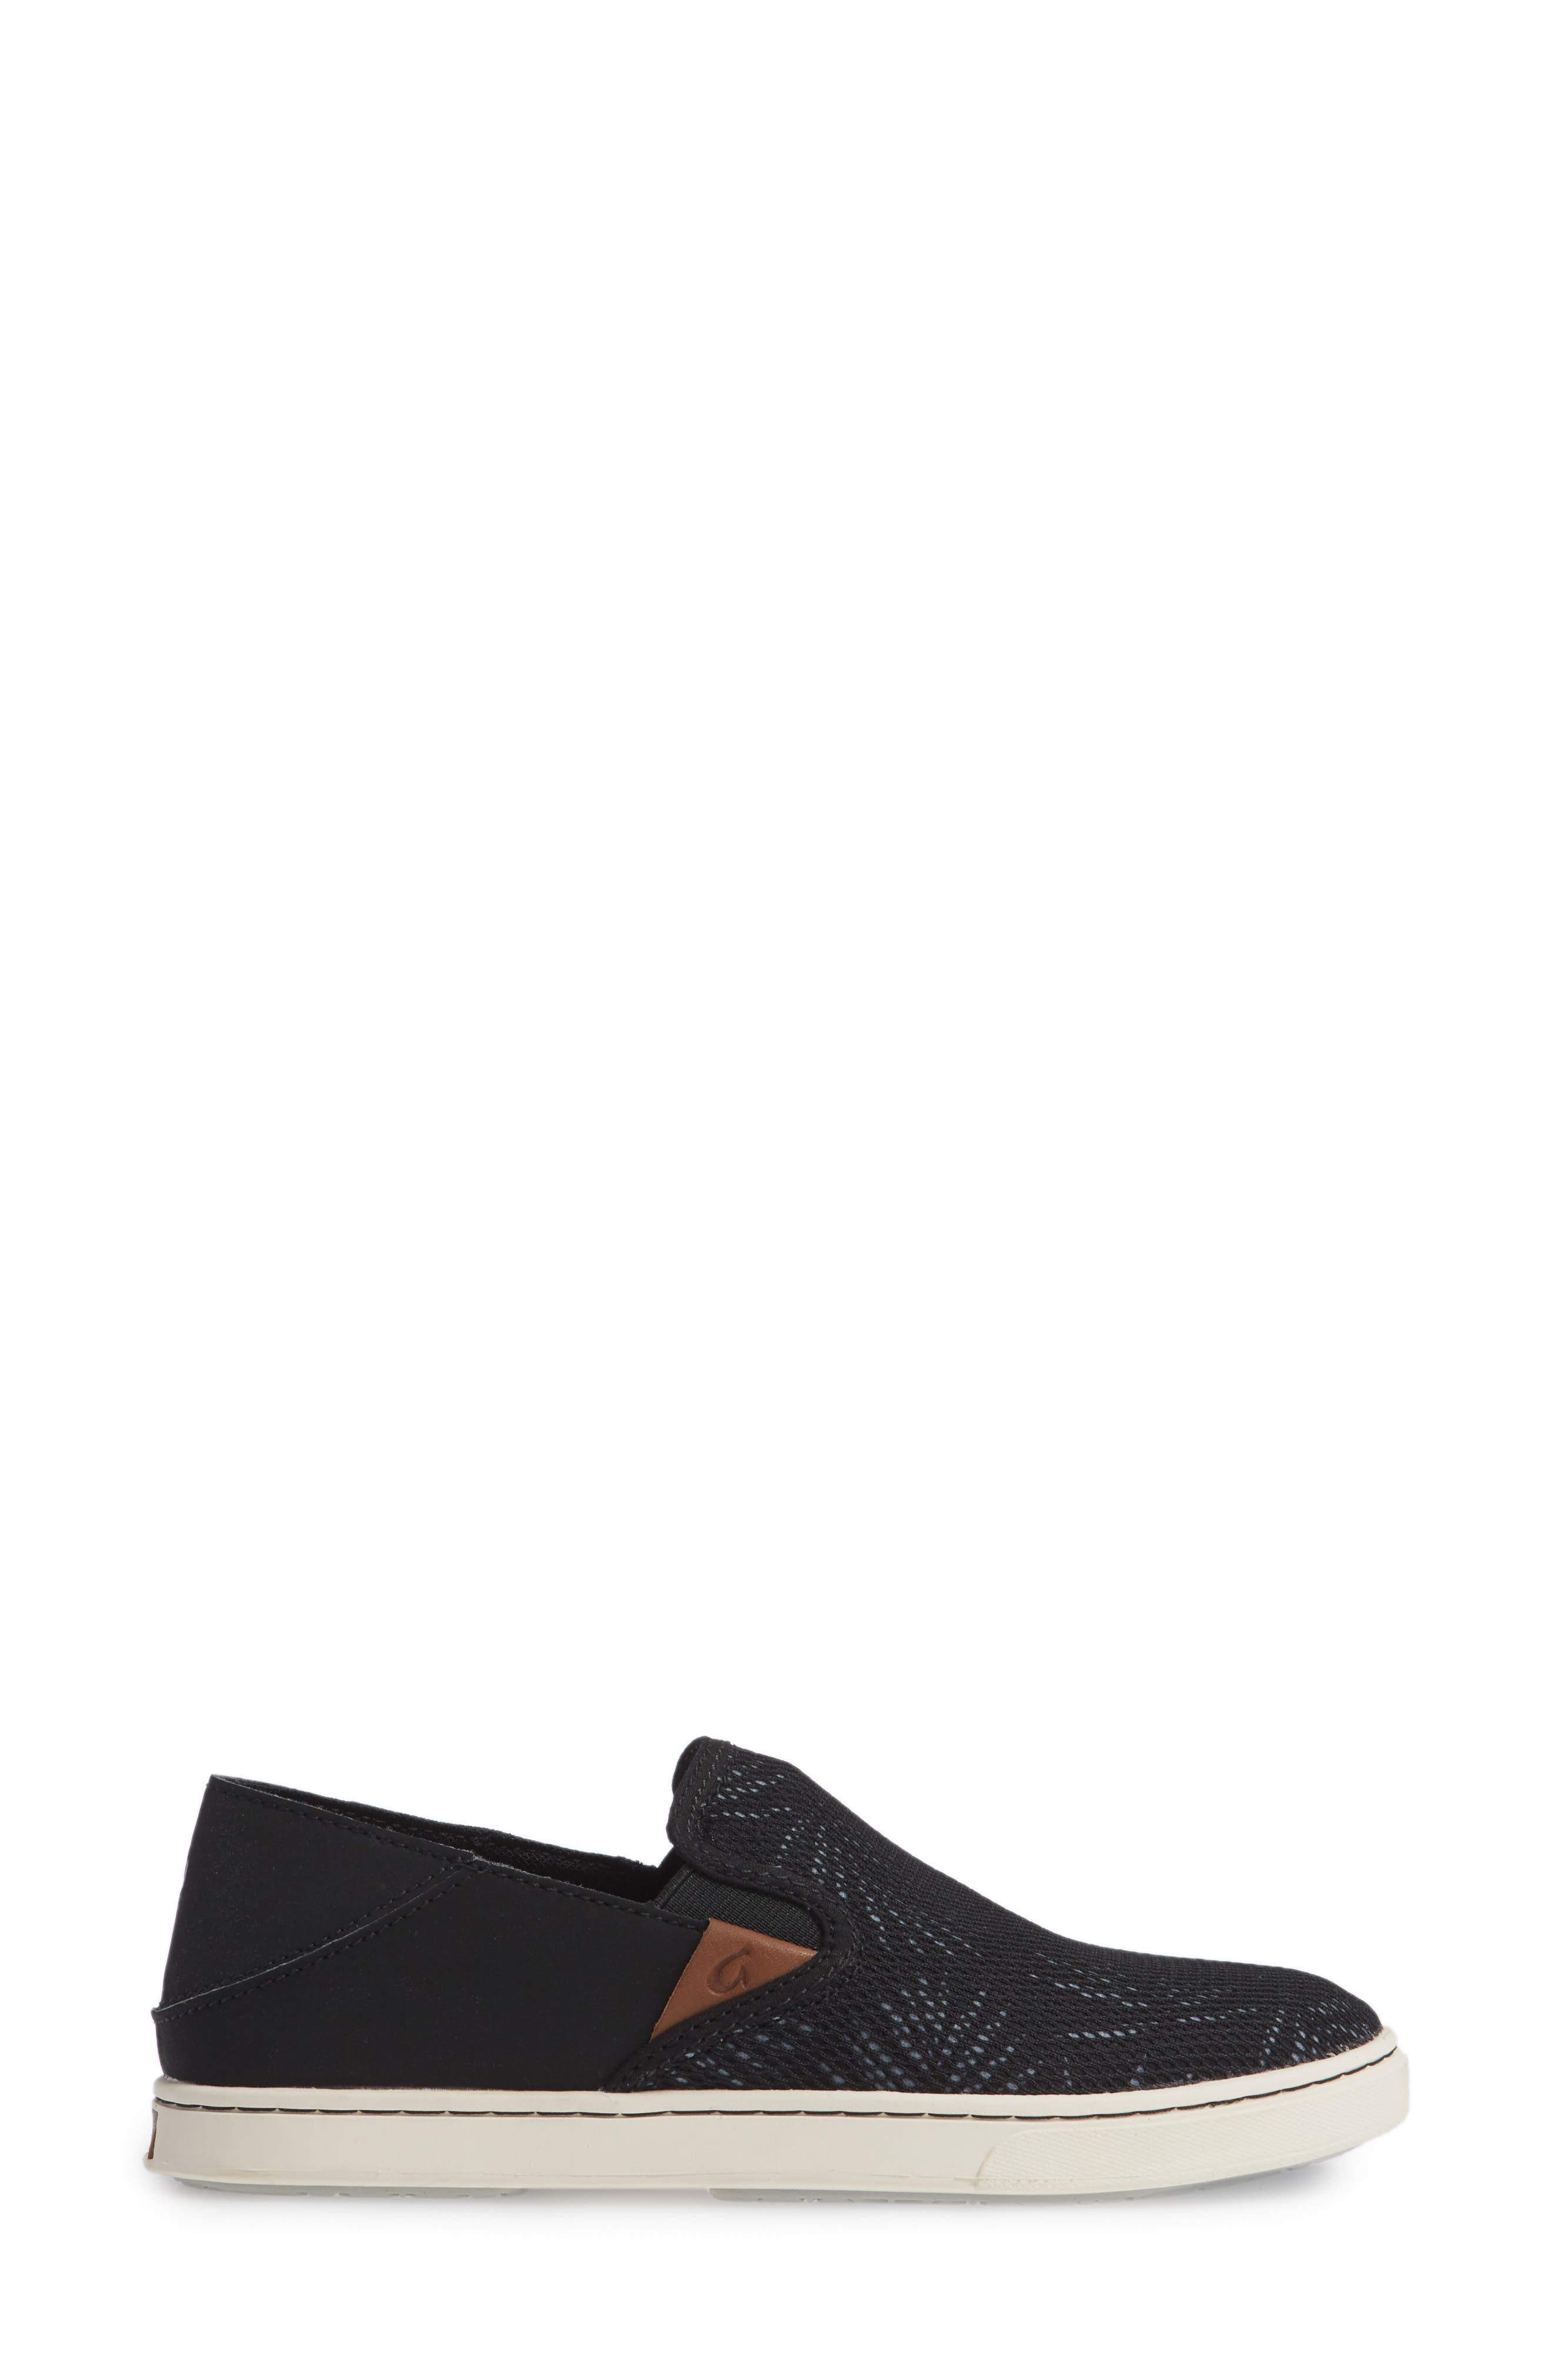 'Pehuea' Slip-On Sneaker,                             Alternate thumbnail 3, color,                             Black/ Palm Fabric